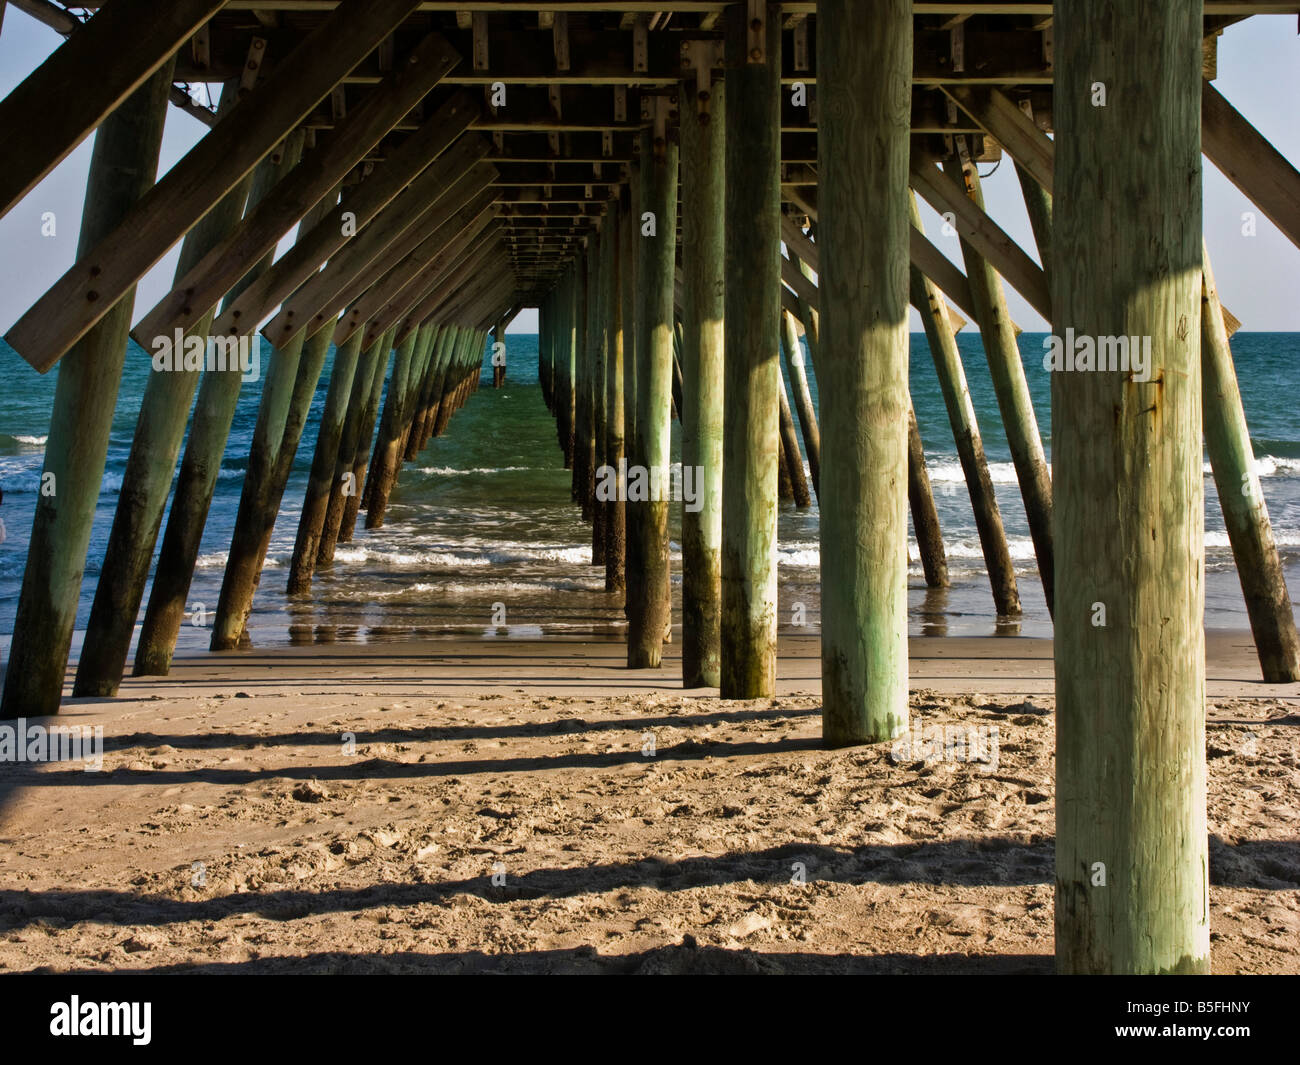 Massive wooden posts support the pier at Myrtle Beach State Park in South Carolina. - Stock Image